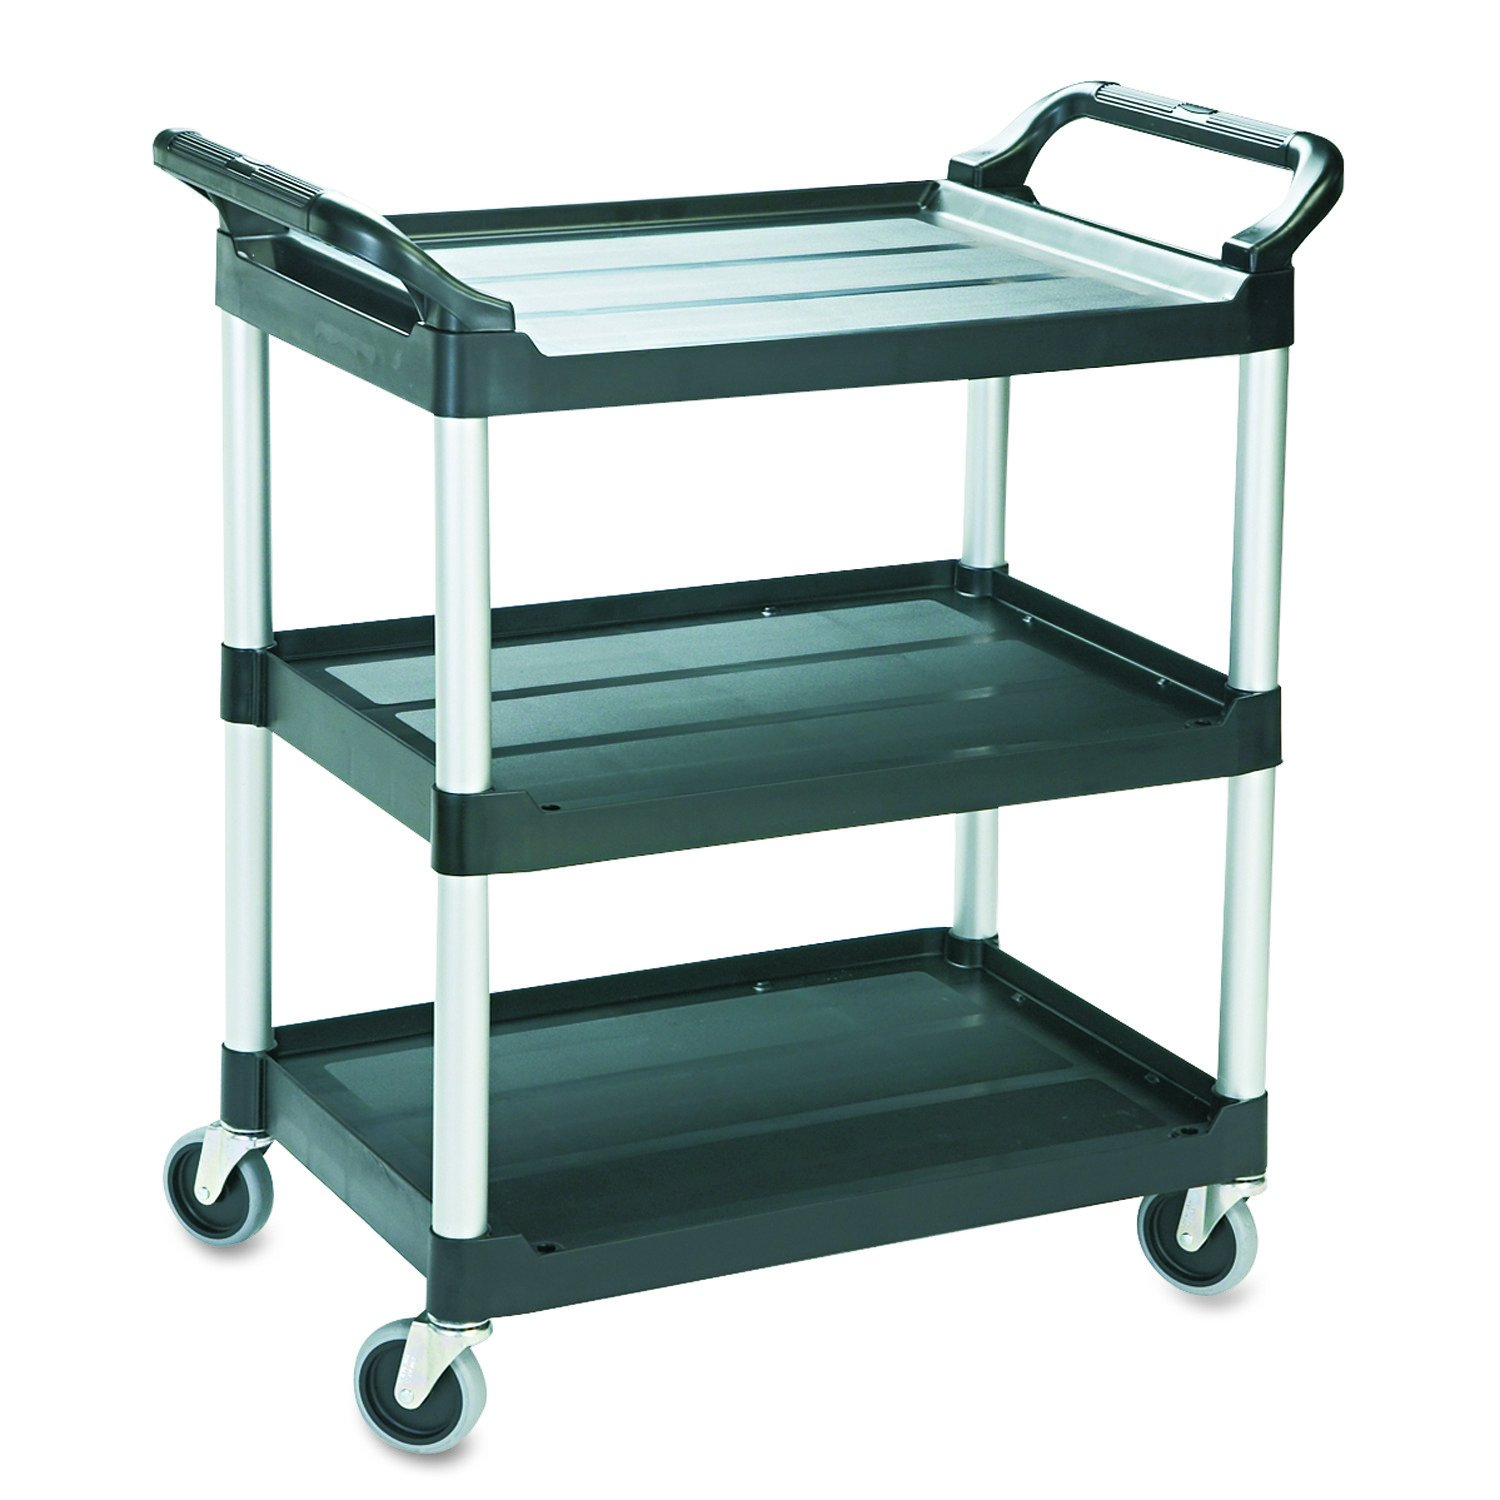 Rubbermaid Commercial Economy Plastic Cart, Three-Shelf, 15H x 19 L, 200 lb Capacity, Black (FG342488BLA) 15H x 19 L